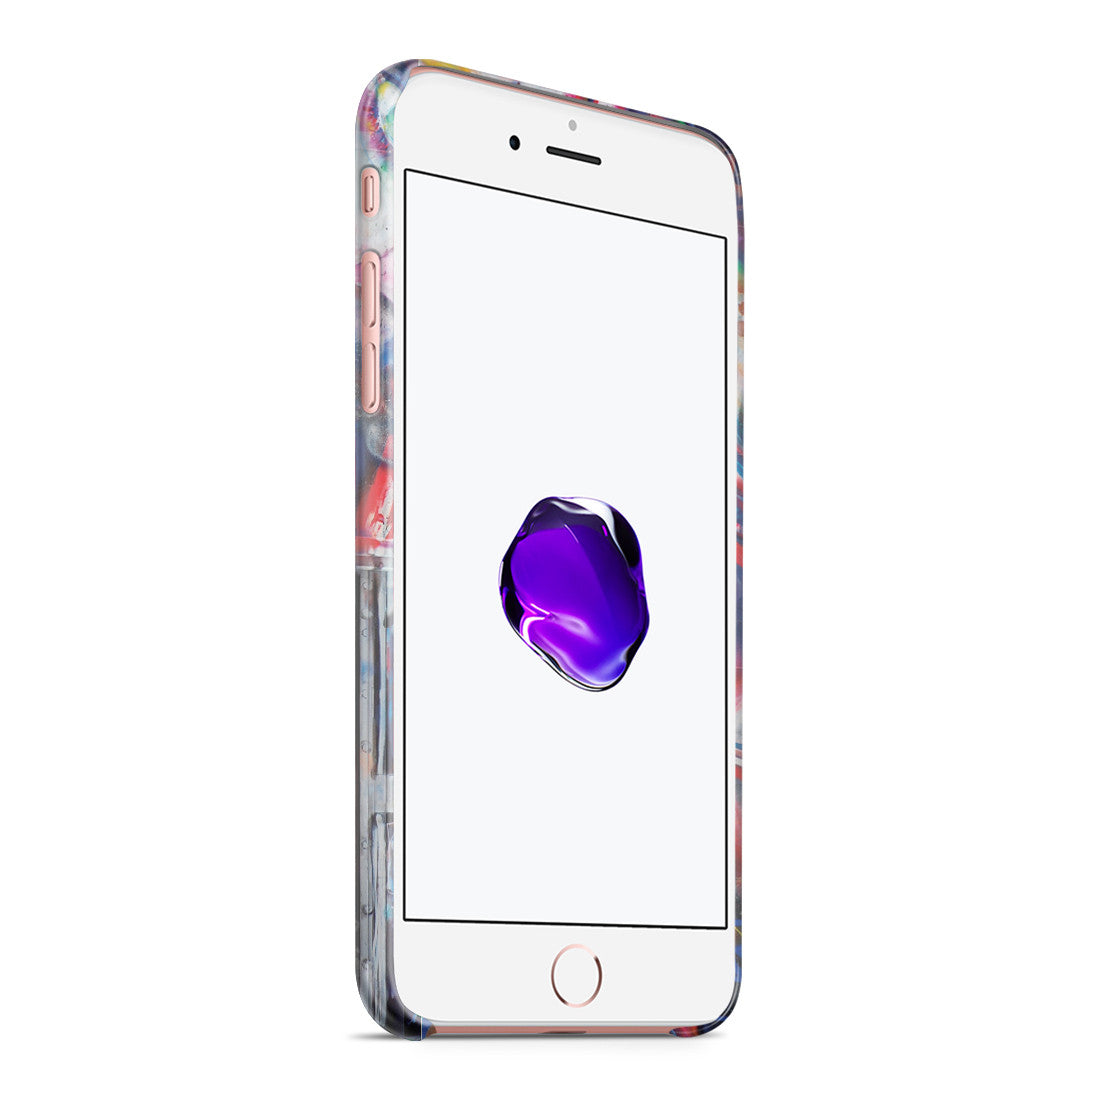 iphone 7 case lost